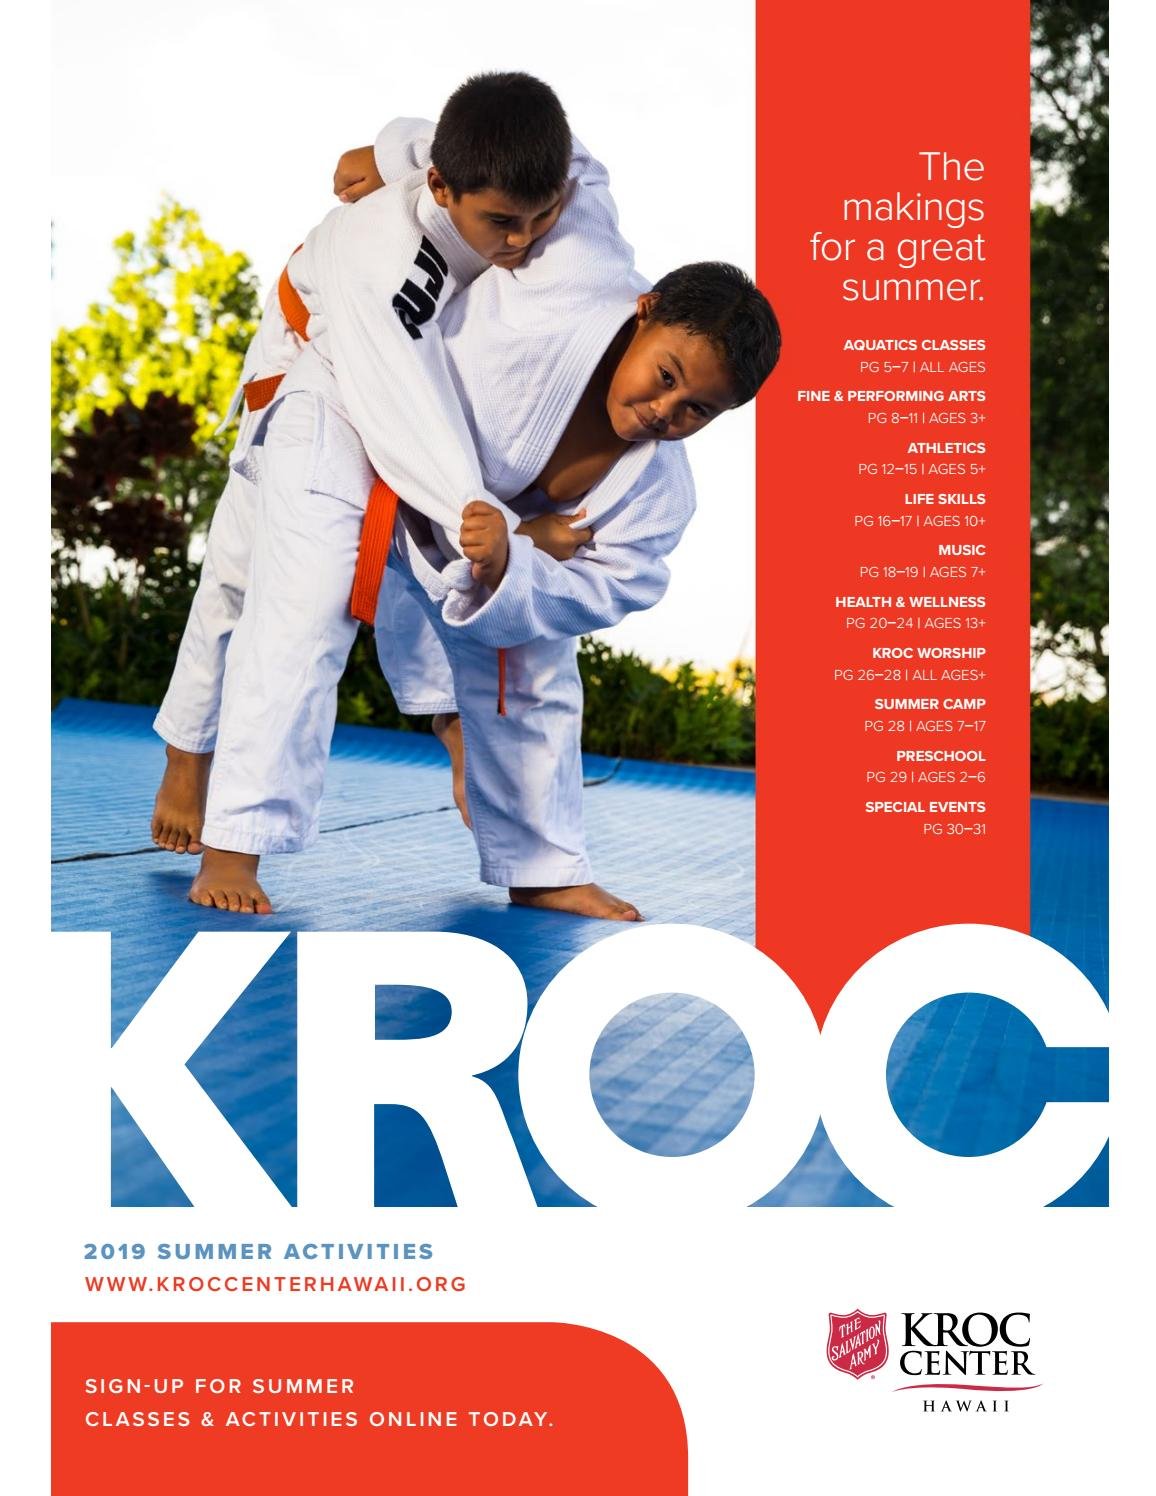 2019 Kroc Center Hawaii Summer Activity Guide by Kroc Center